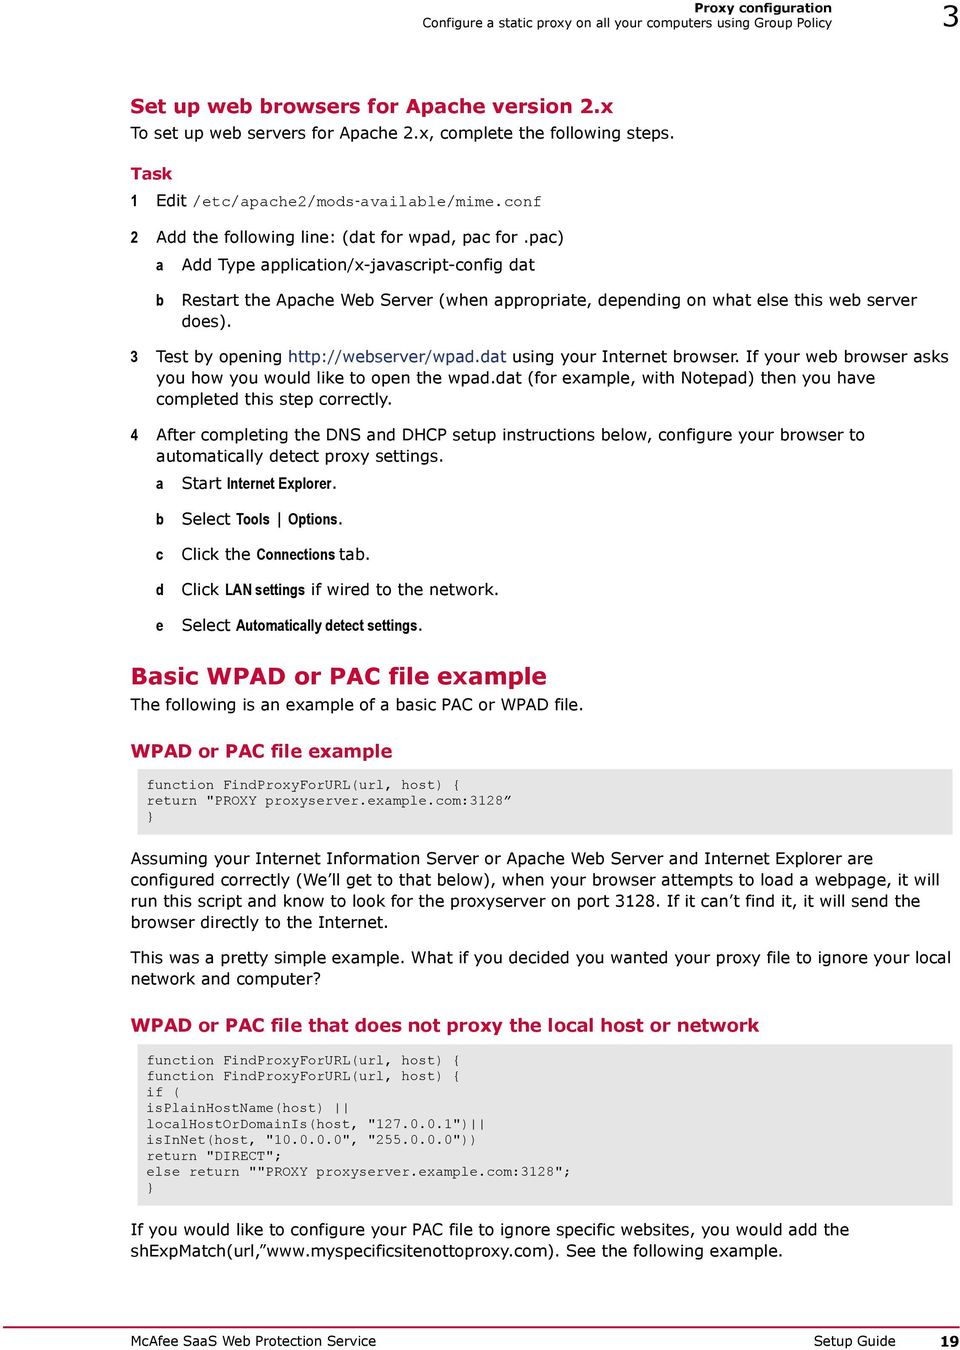 Setup Guide Revision C  McAfee SaaS Web Protection Service - PDF